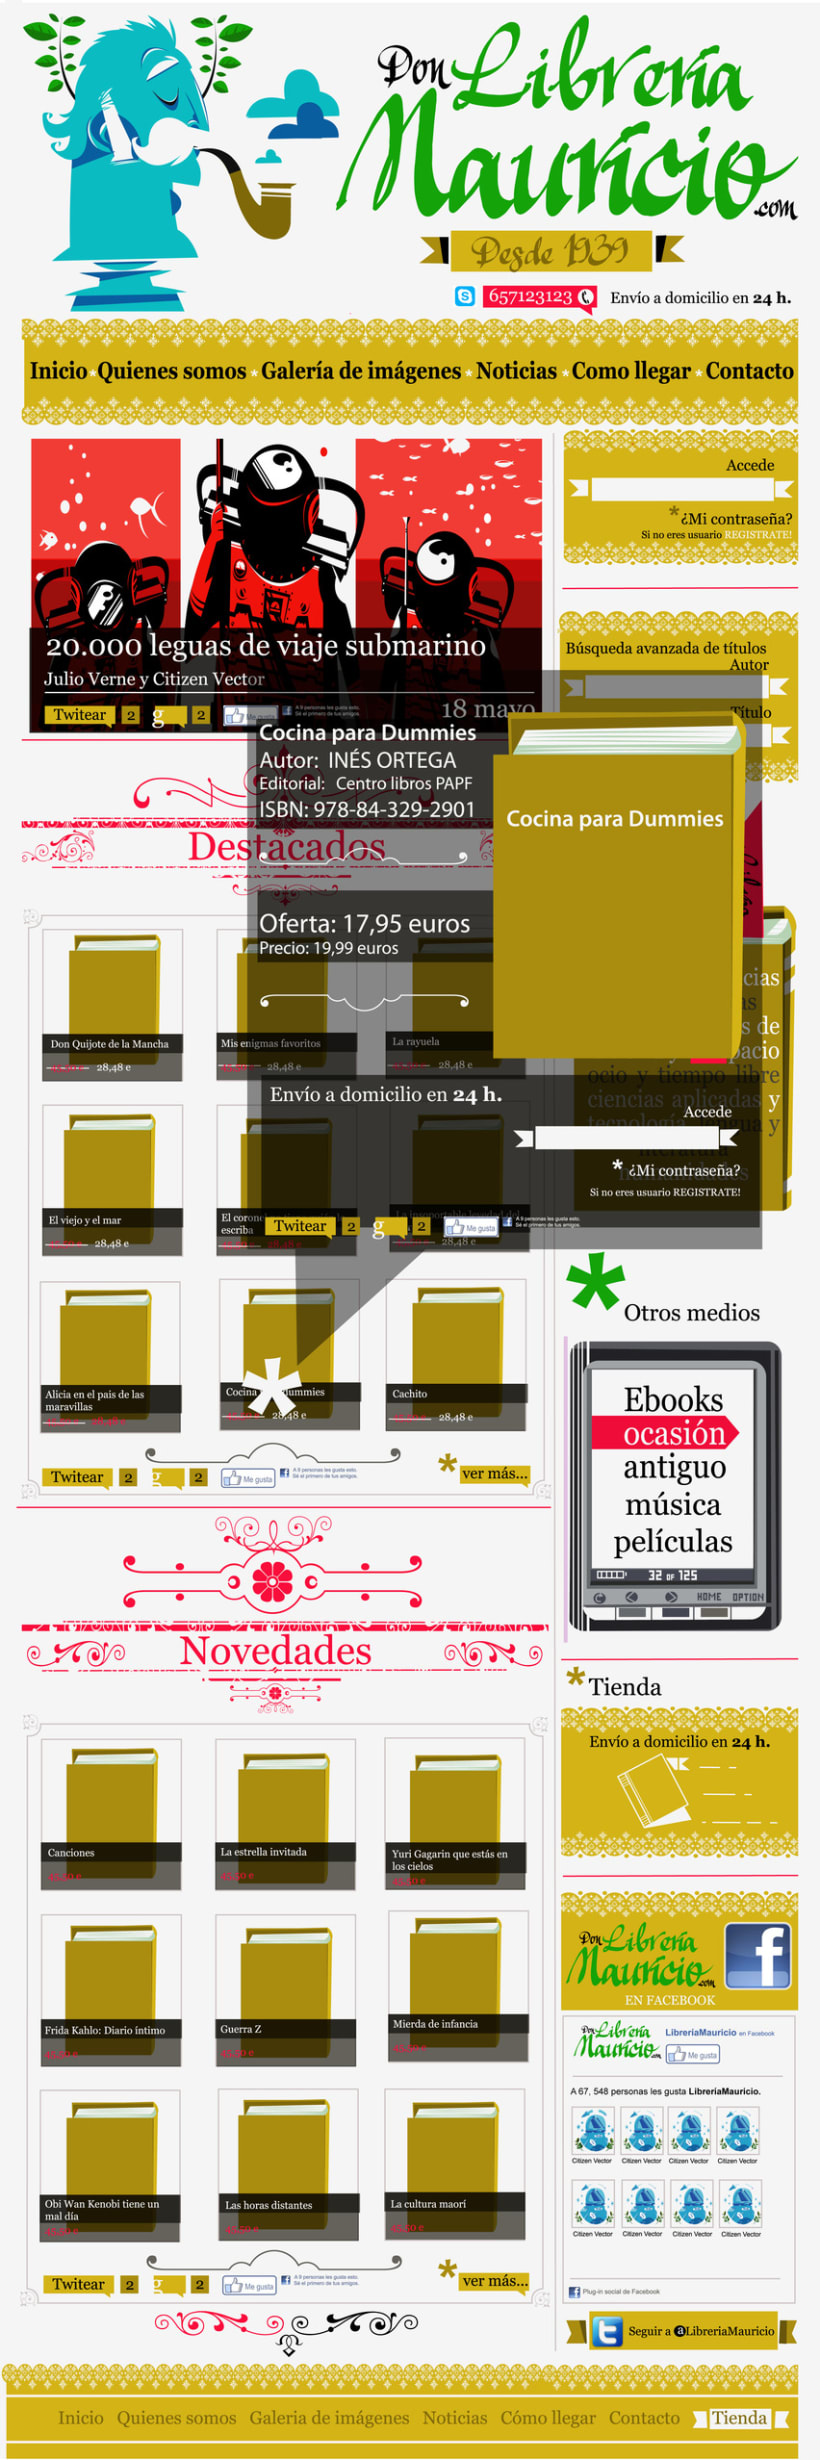 Diseño web: Retina Display 2